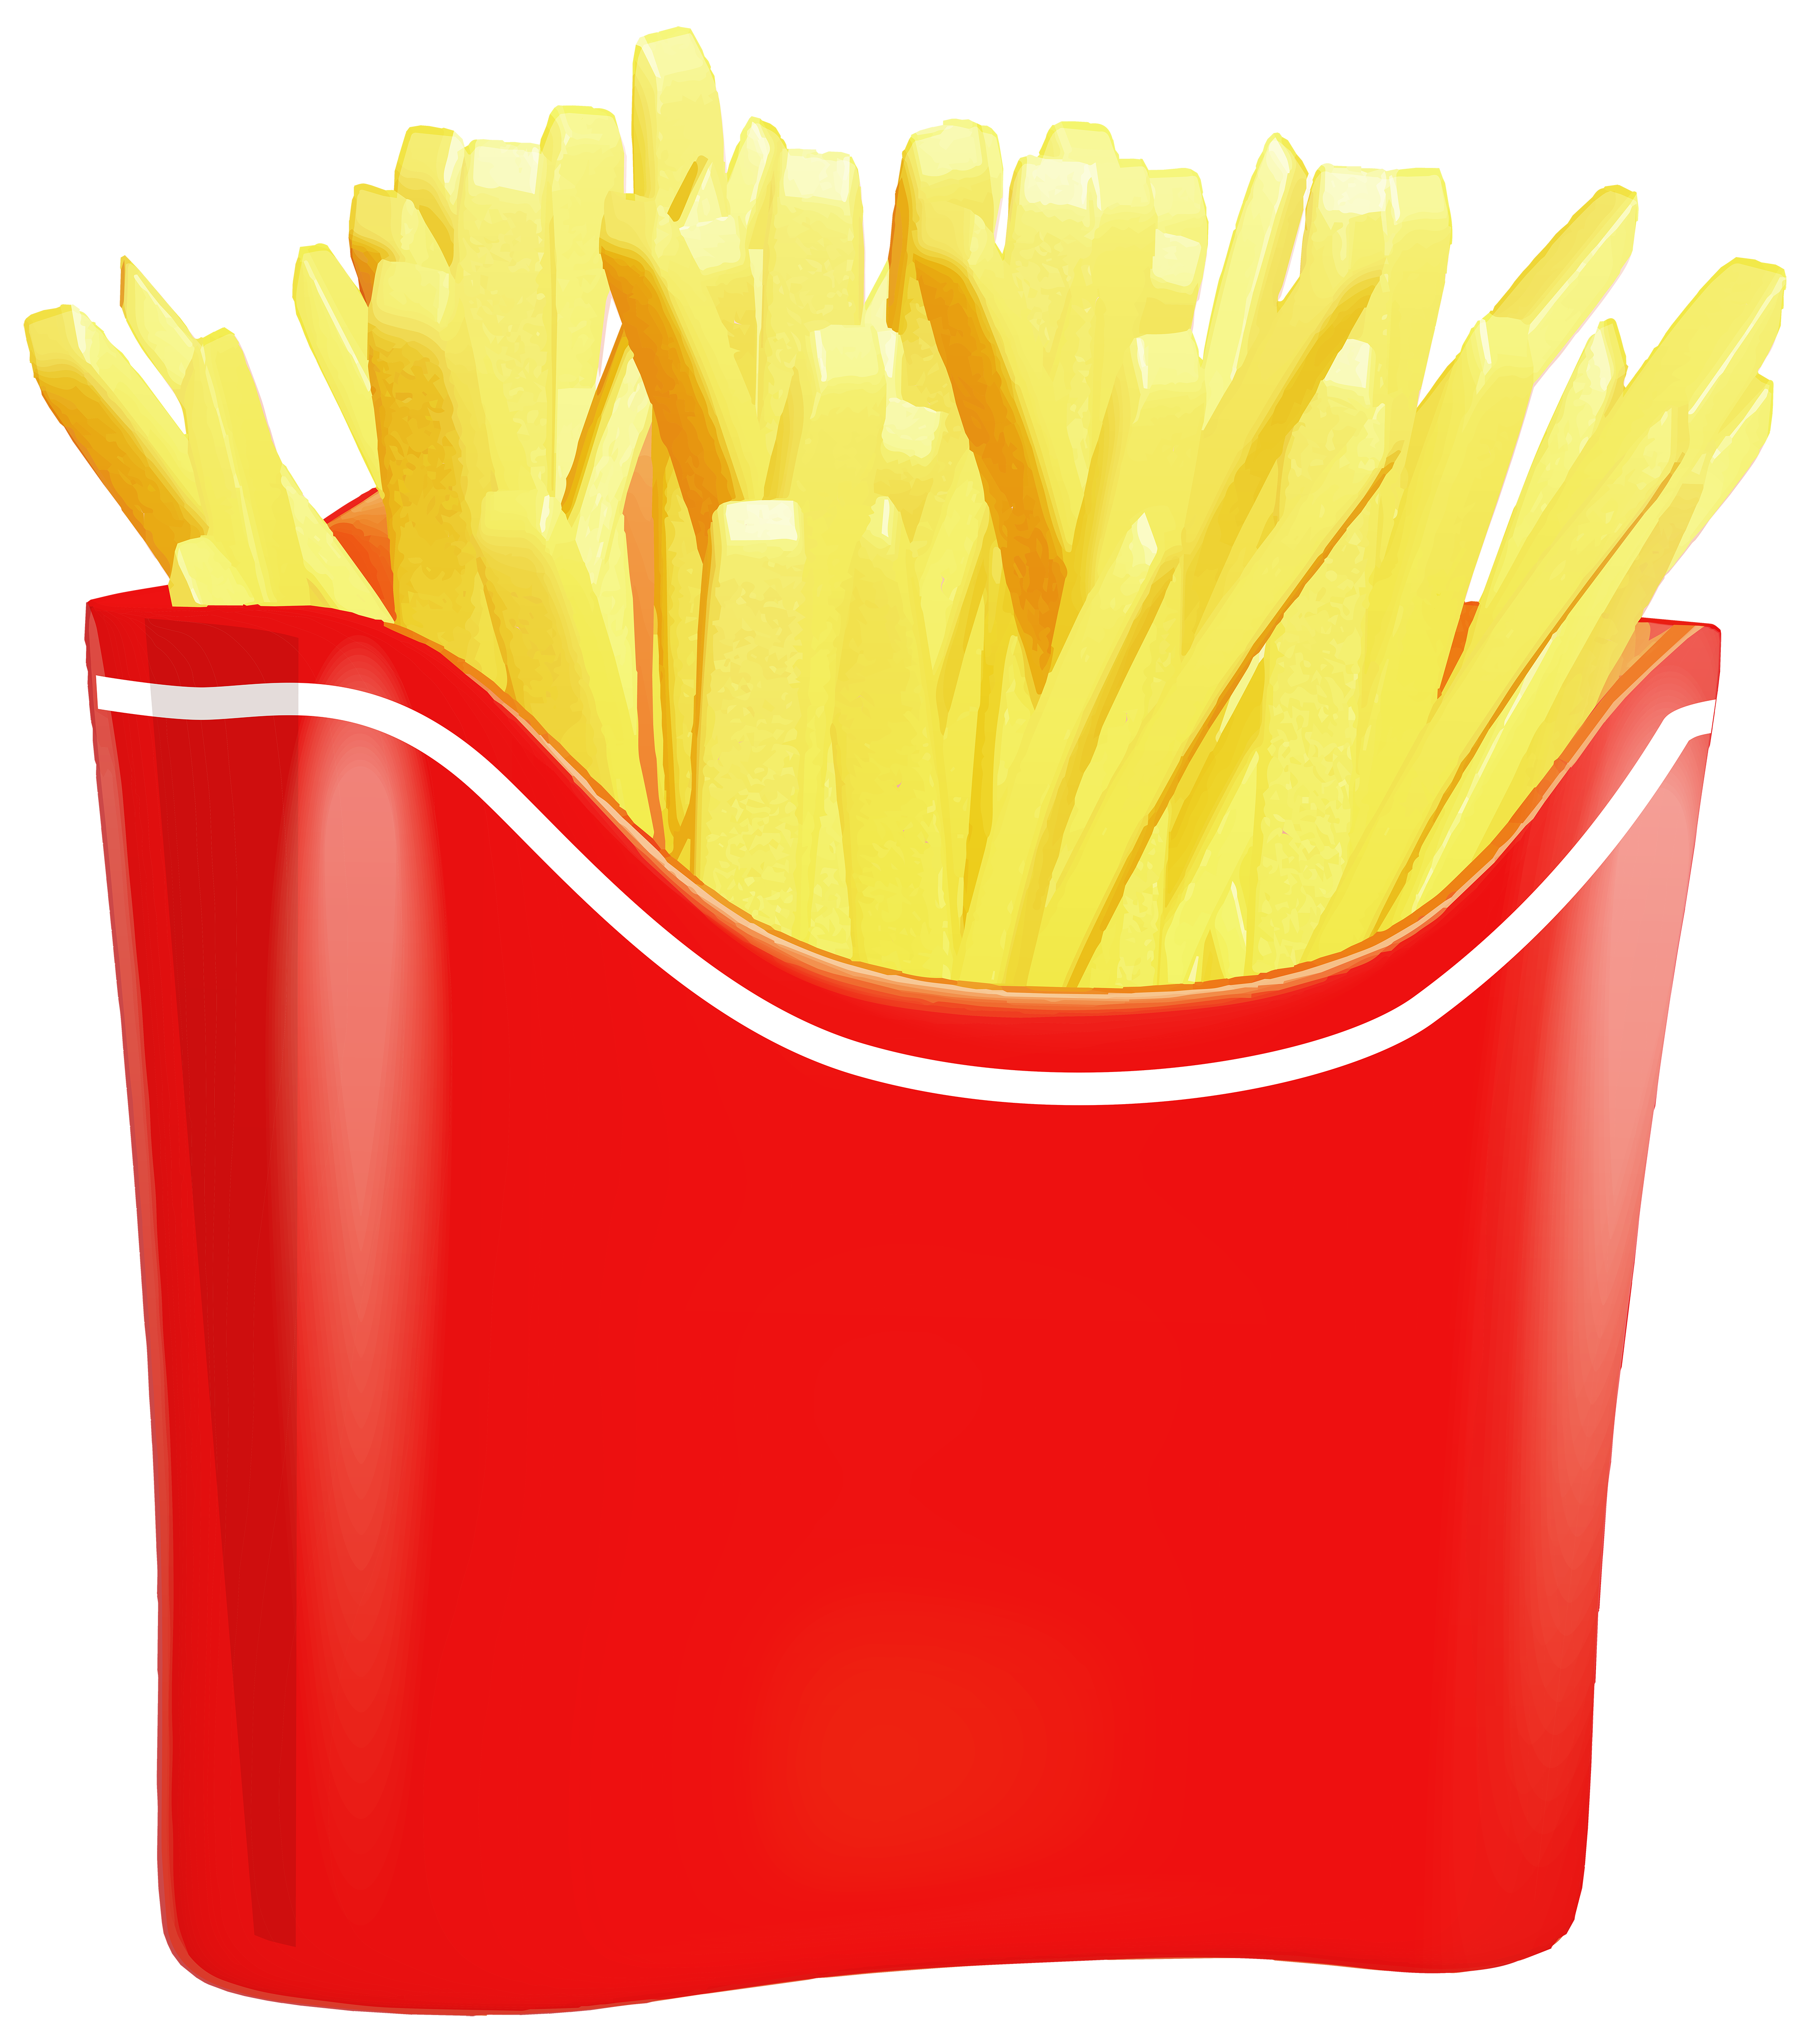 Fries Png Image Food Png Fries French Fries